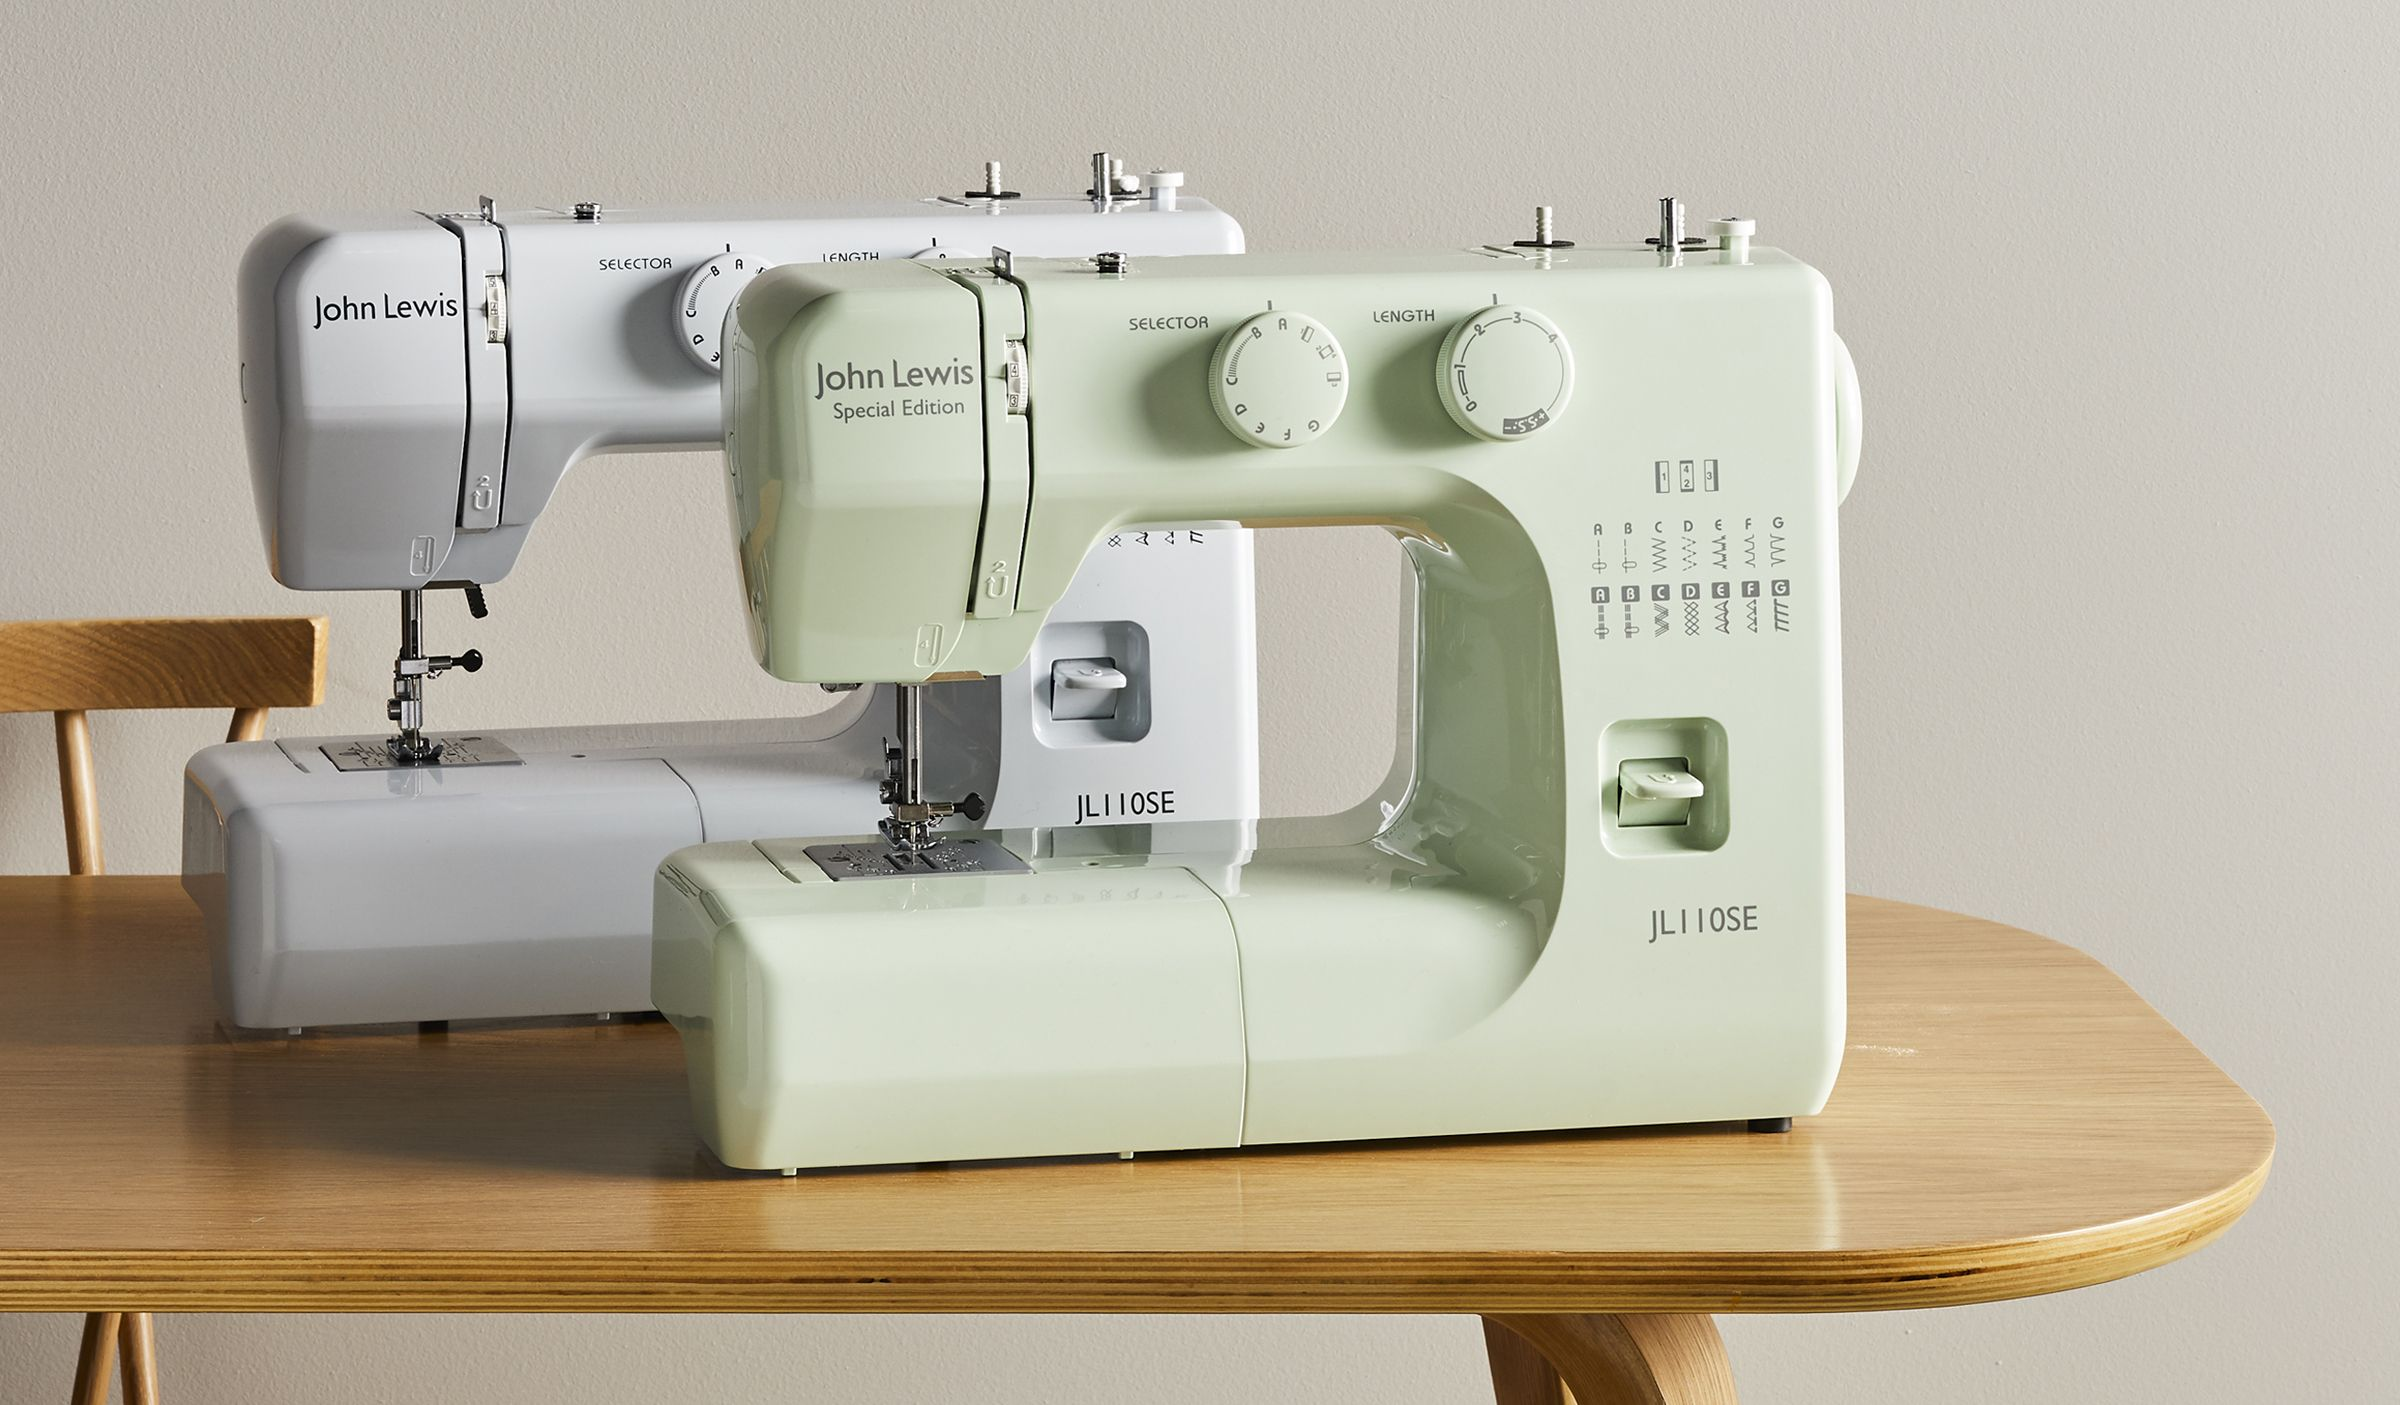 Sewing machines buying guide